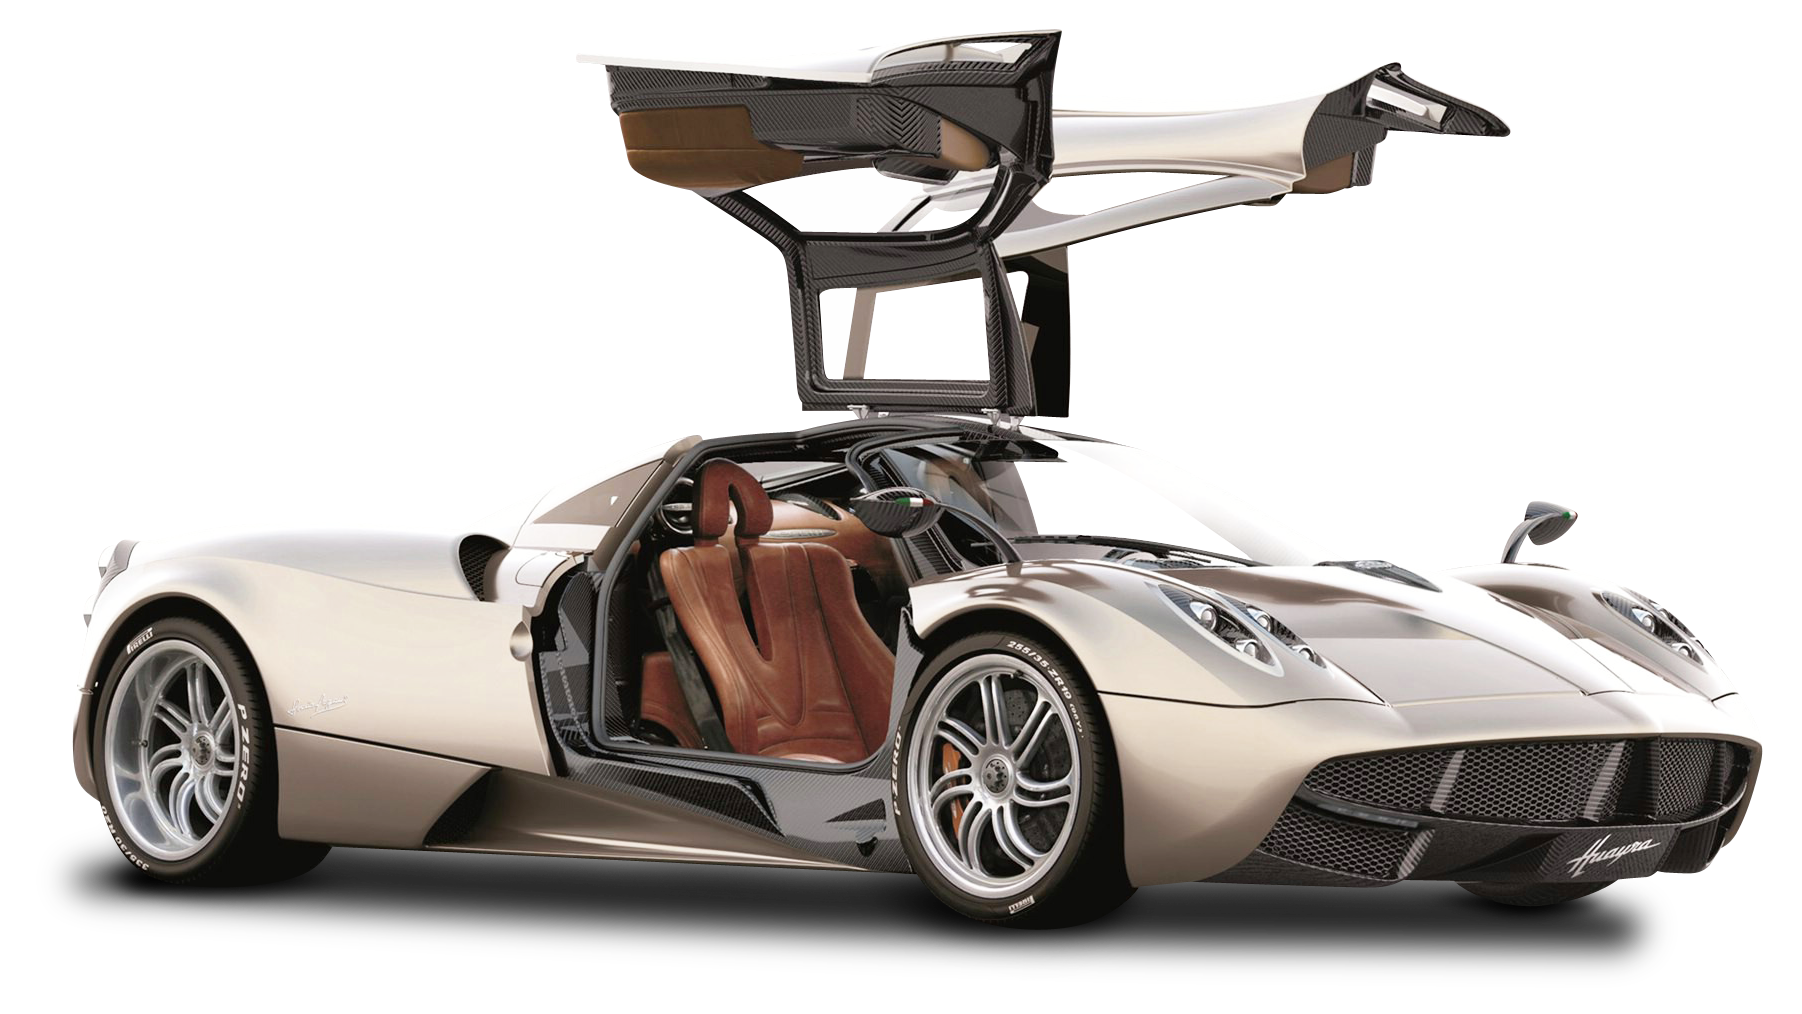 Pagani Huayra Sports Car PNG Image